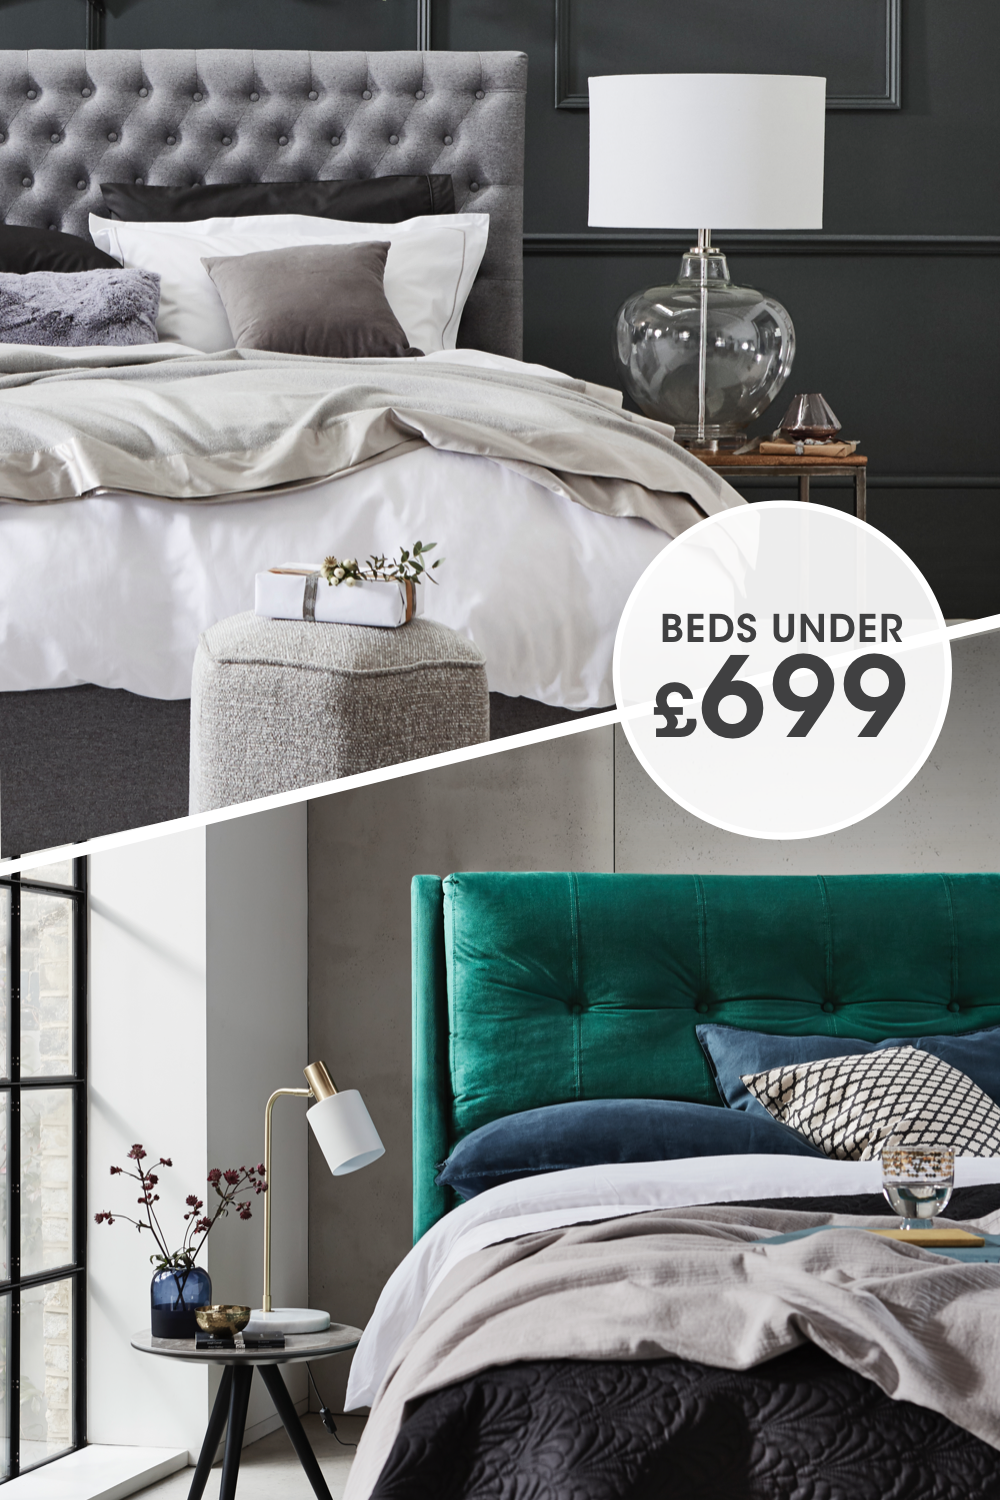 Enjoy A More Stylish Night S Sleep For Less Browse Our Beautifully Affordable Beds In 2020 Bed Affordable Bedding Furniture